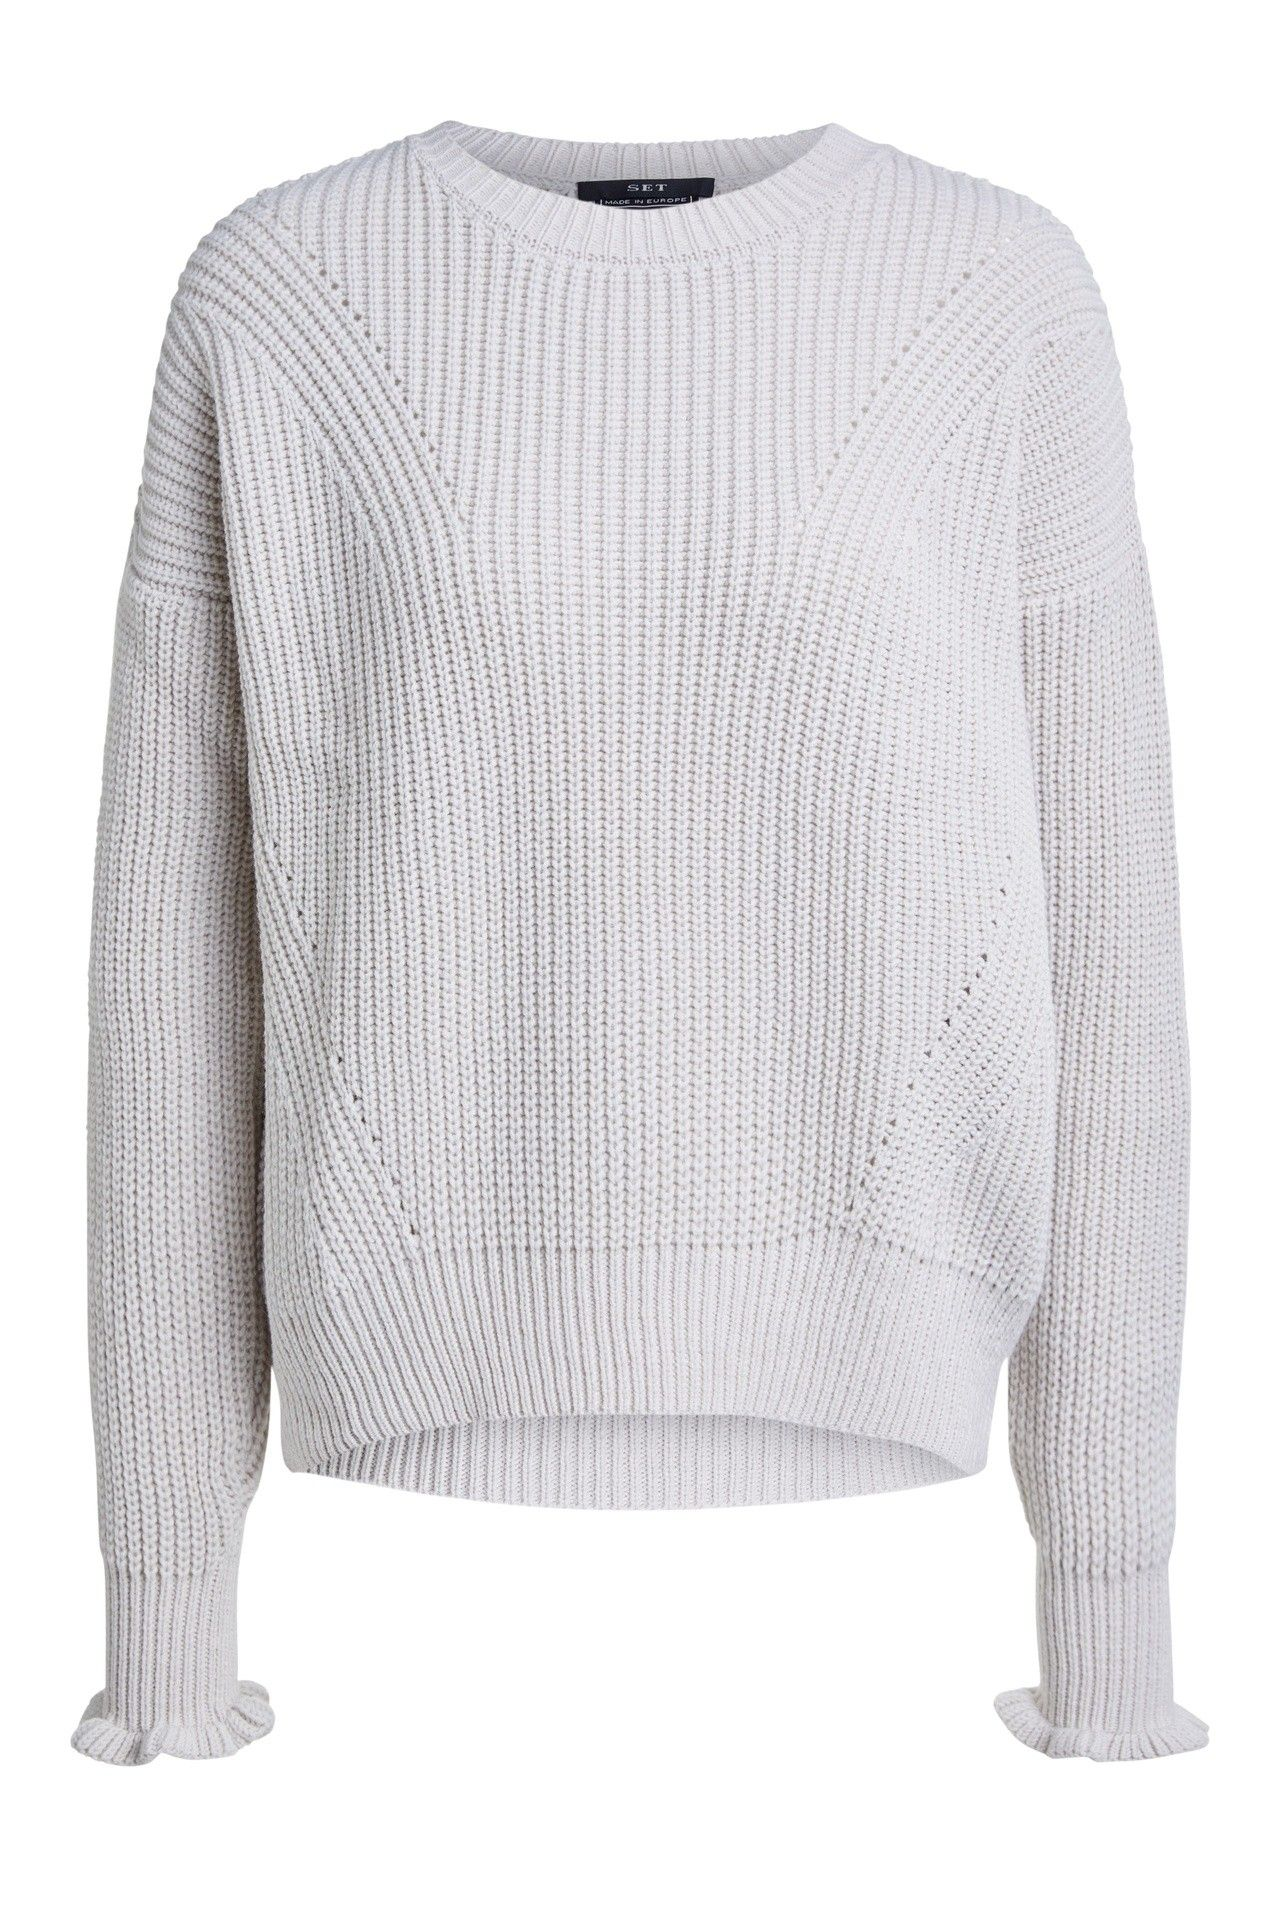 SET - Damen Sweater - Pullover - Offwhite